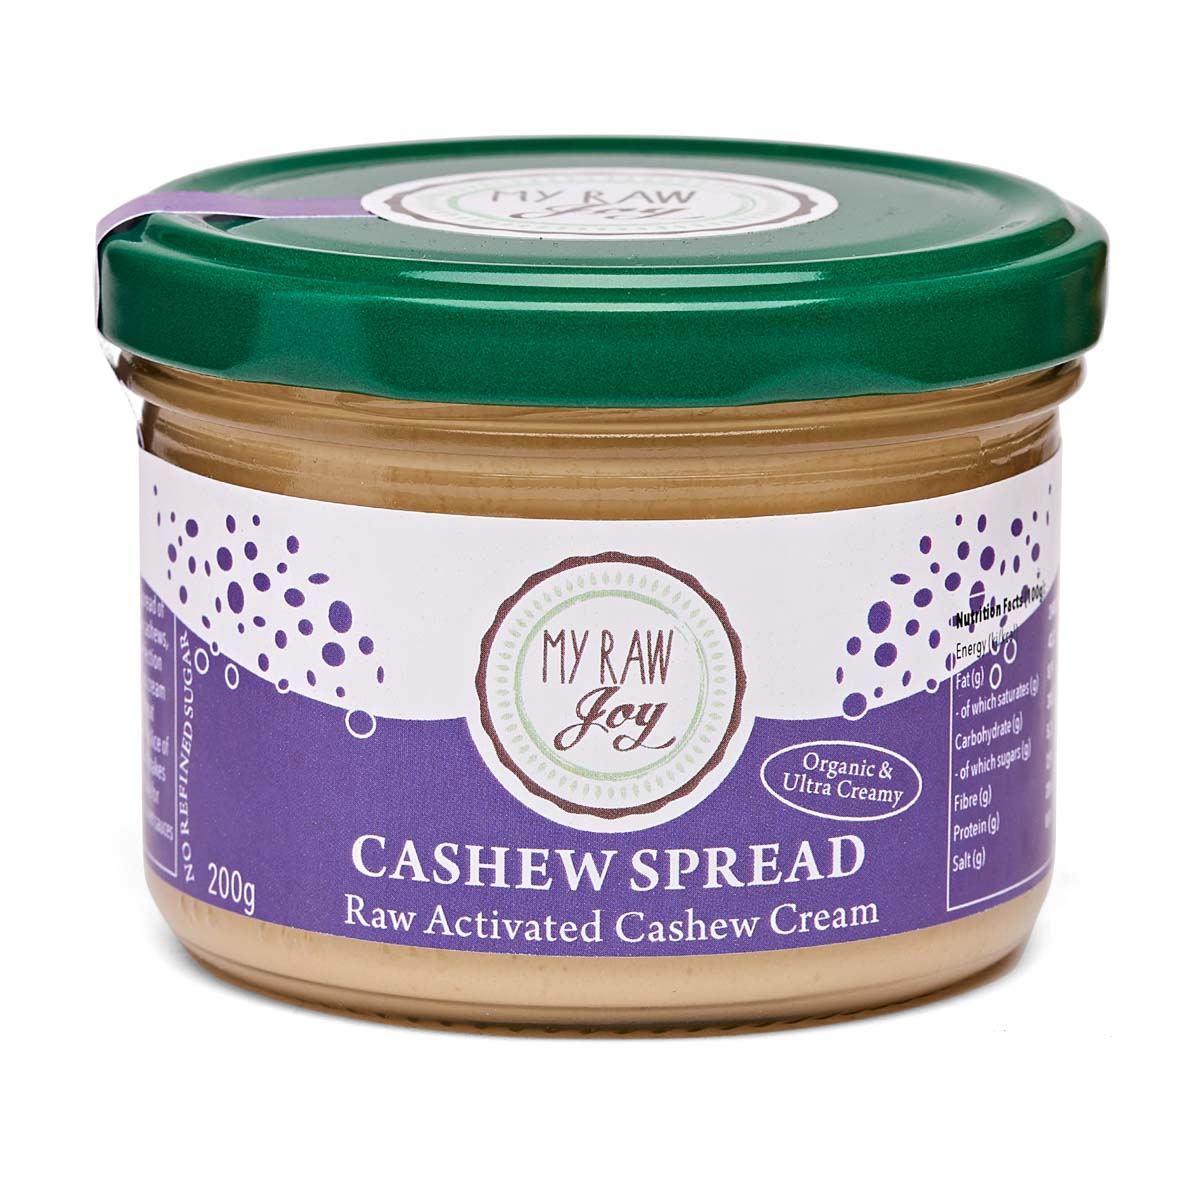 My Raw Joy - Activated Cashew Spread (200g)